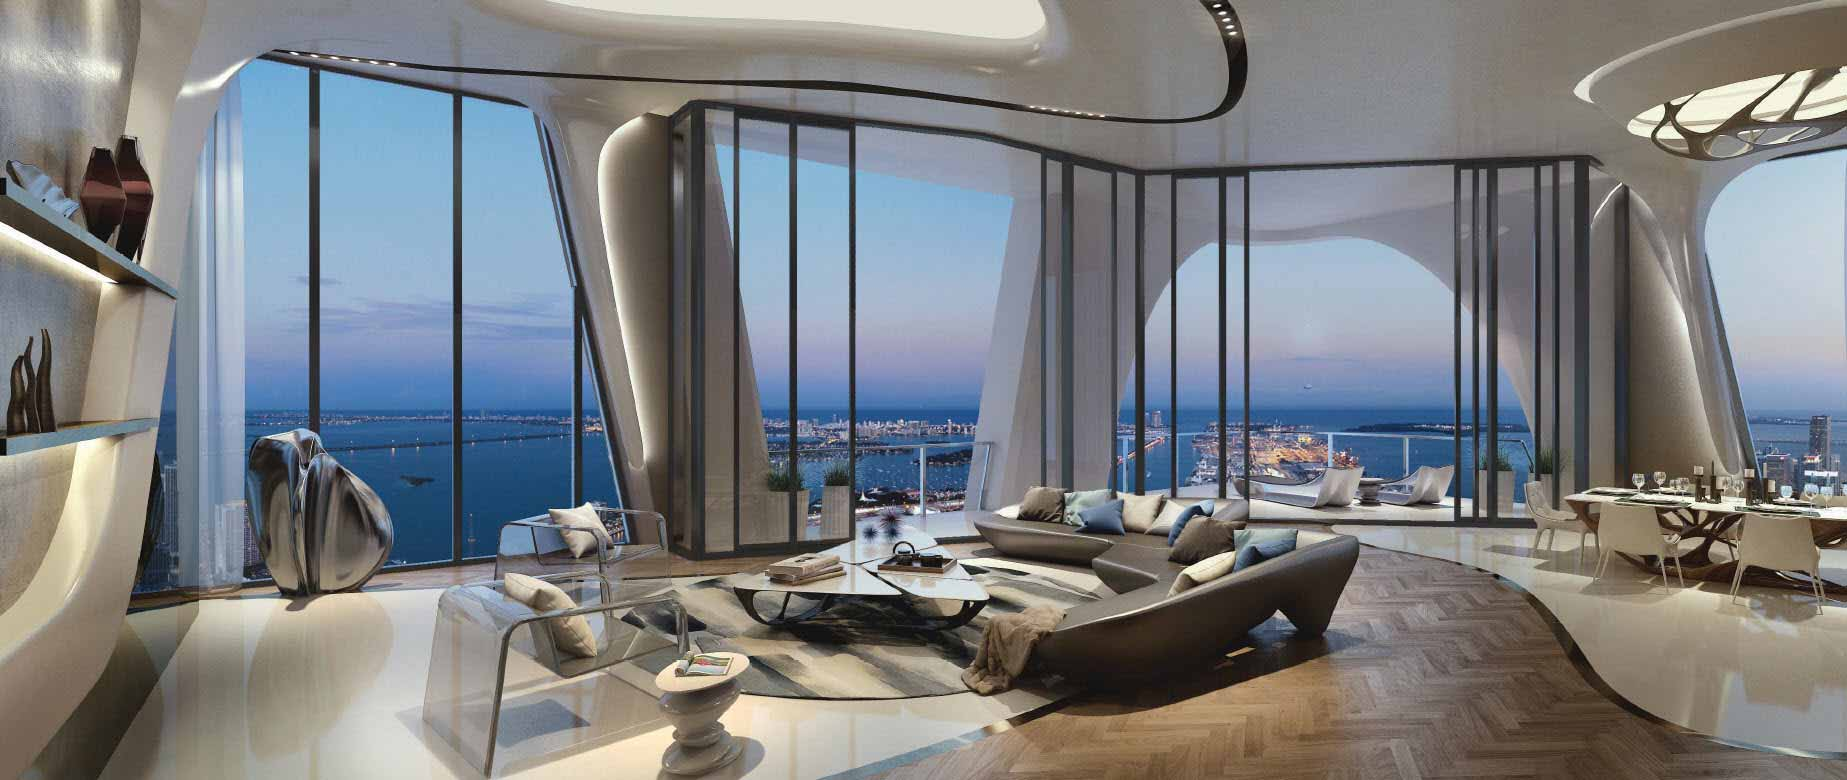 Top 11 Penthouses From Across The World That Will Keep You Daydreaming